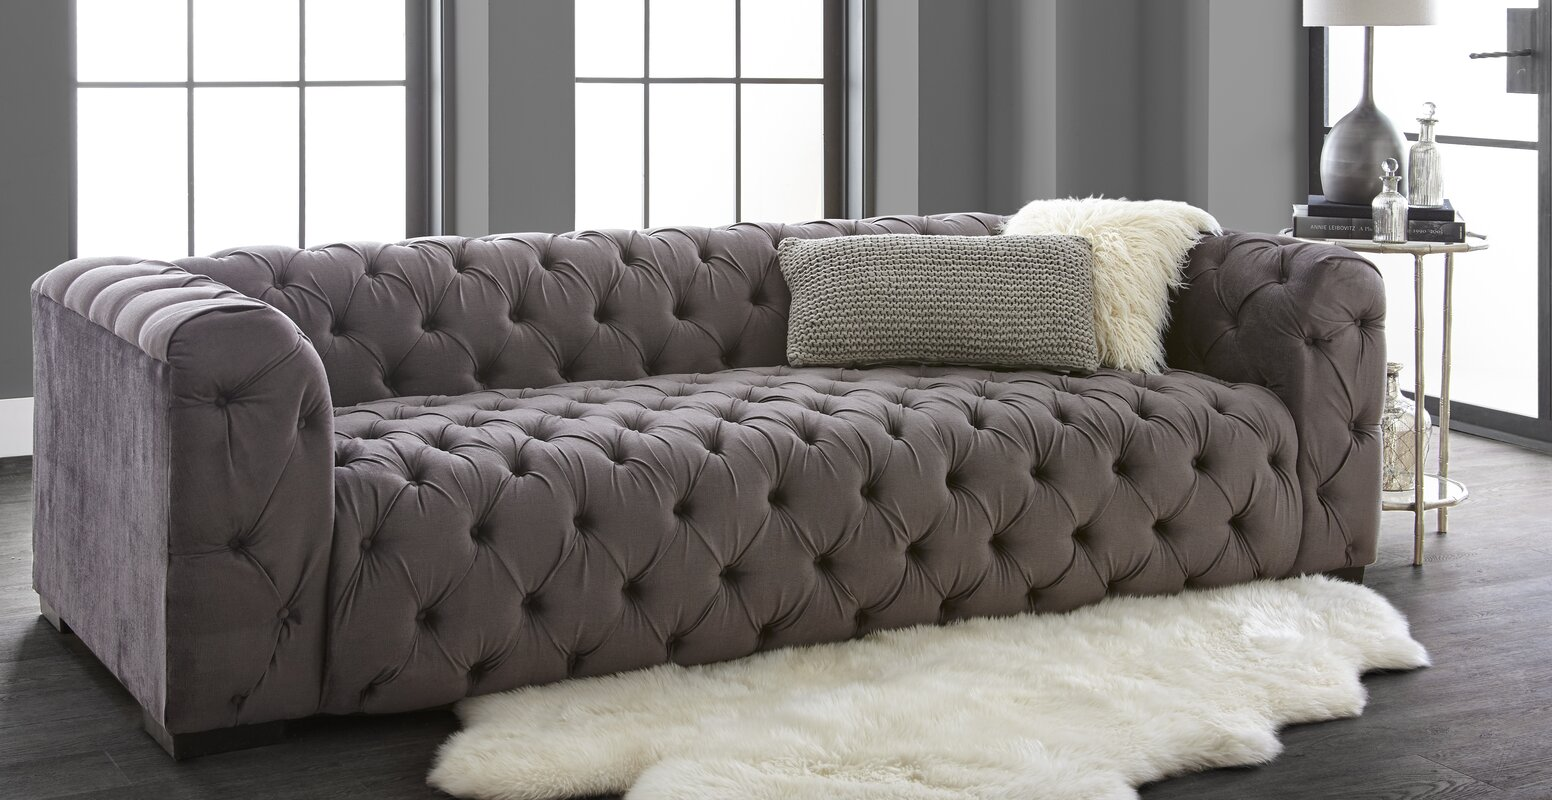 Home By Sean Catherine Lowe Kensignton Chesterfield Sofa - Chesterfield sofa